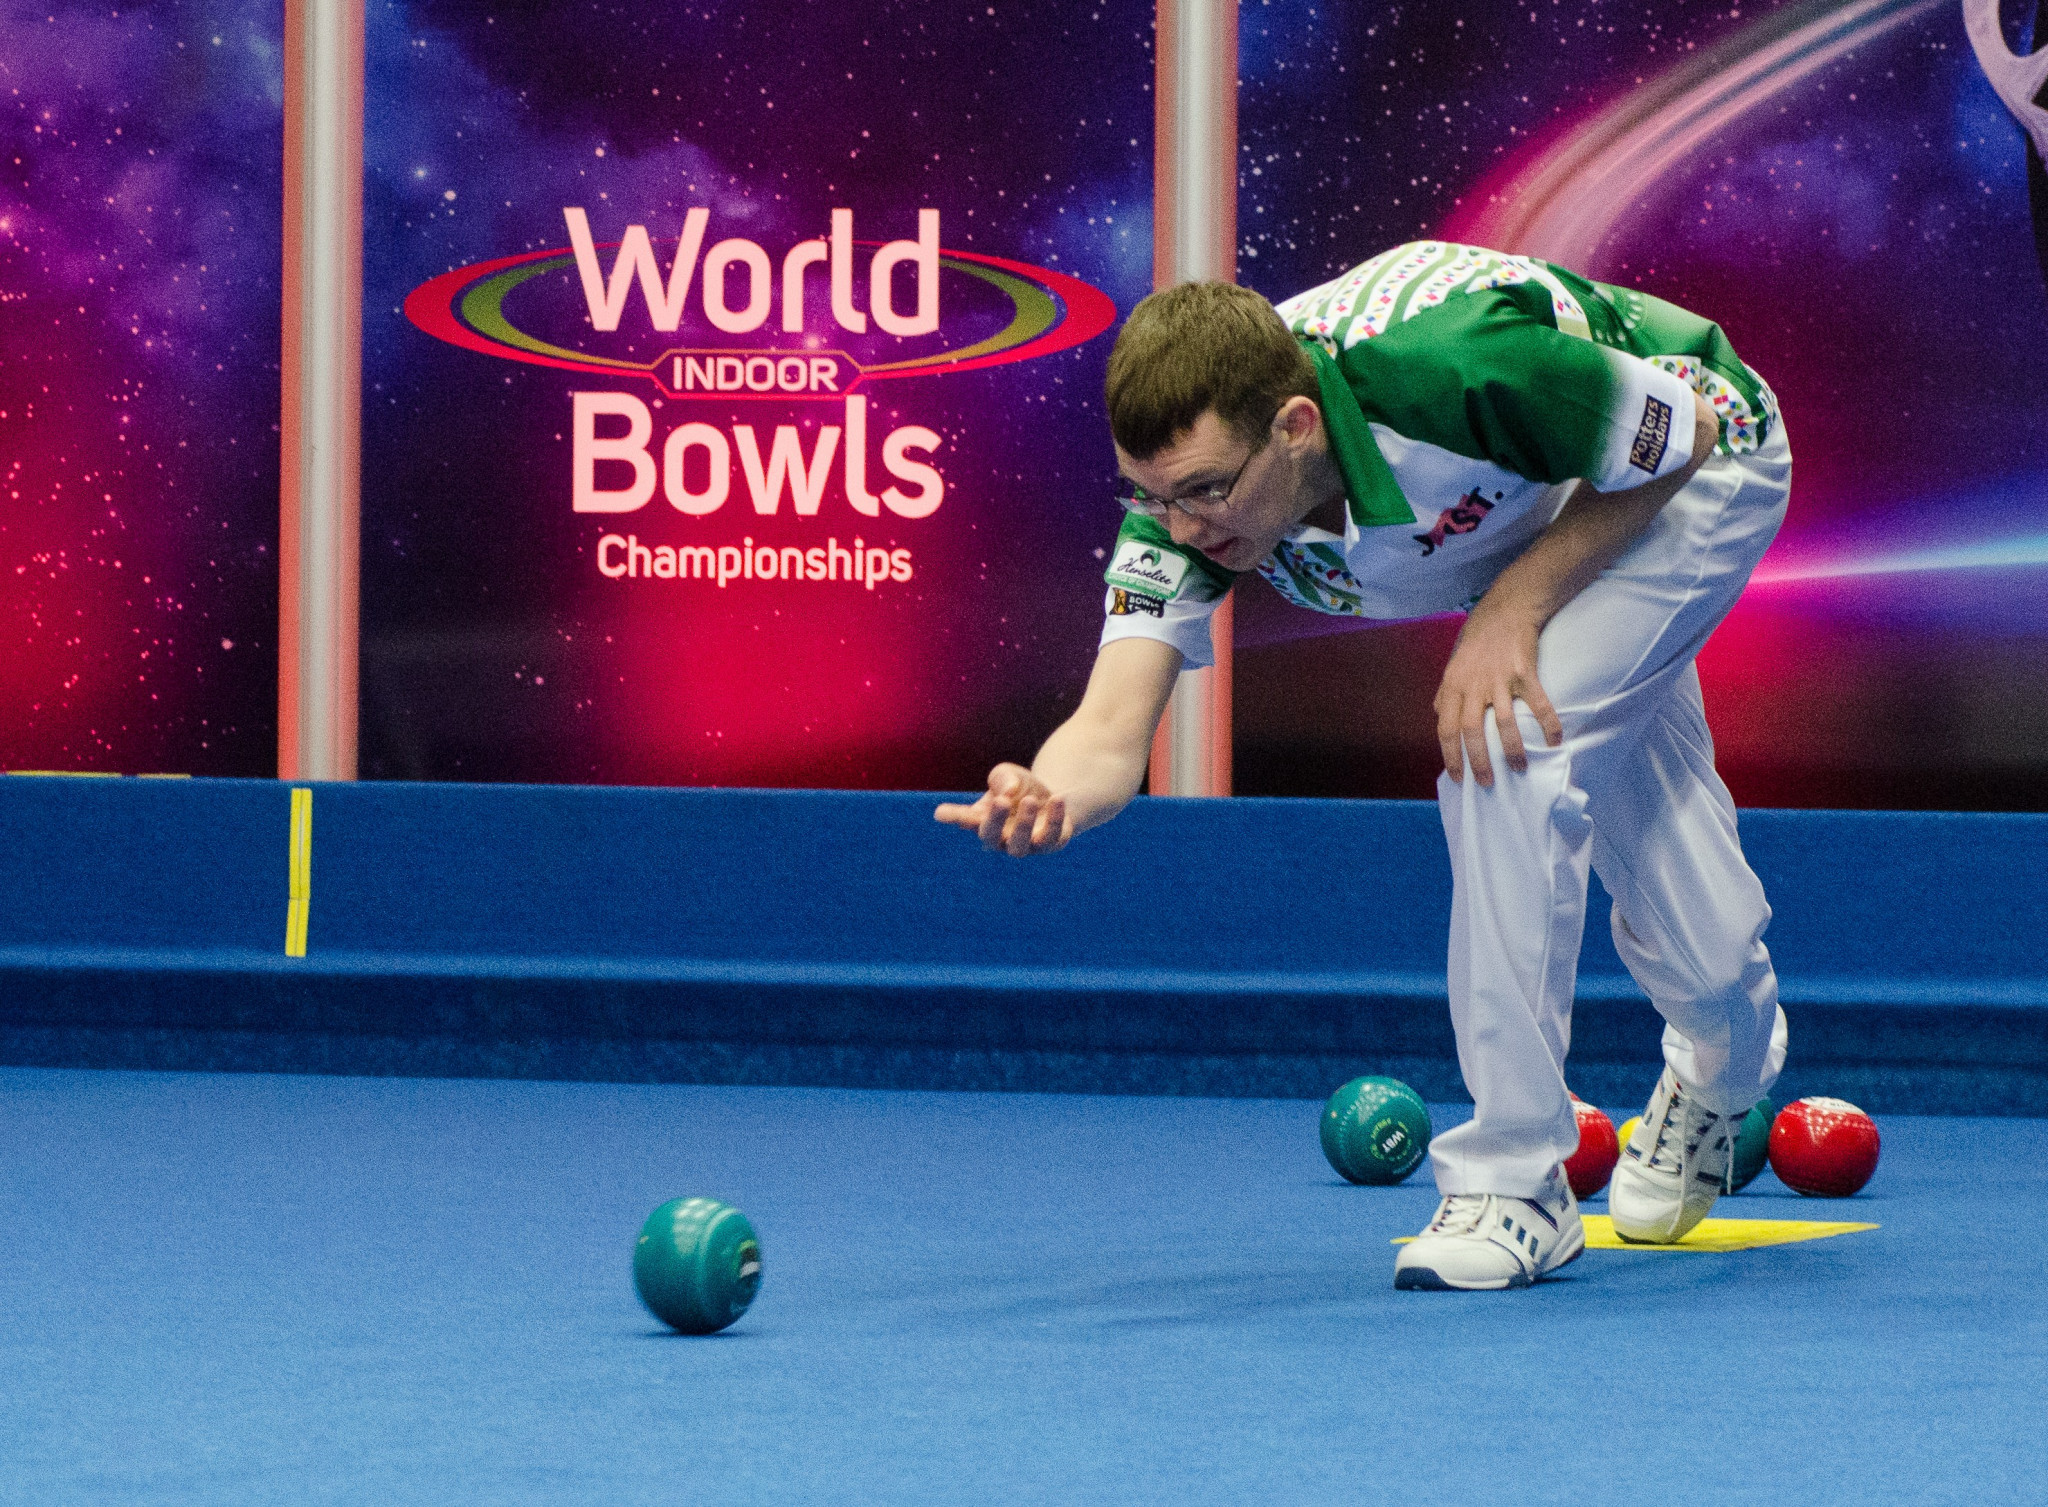 England's Mark Dawes beat Scotland's Darren Burnett in the first of the men's singles semi-finals at the World Indoor Bowls Championships in Great Yarmouth ©WorldBowlsTour